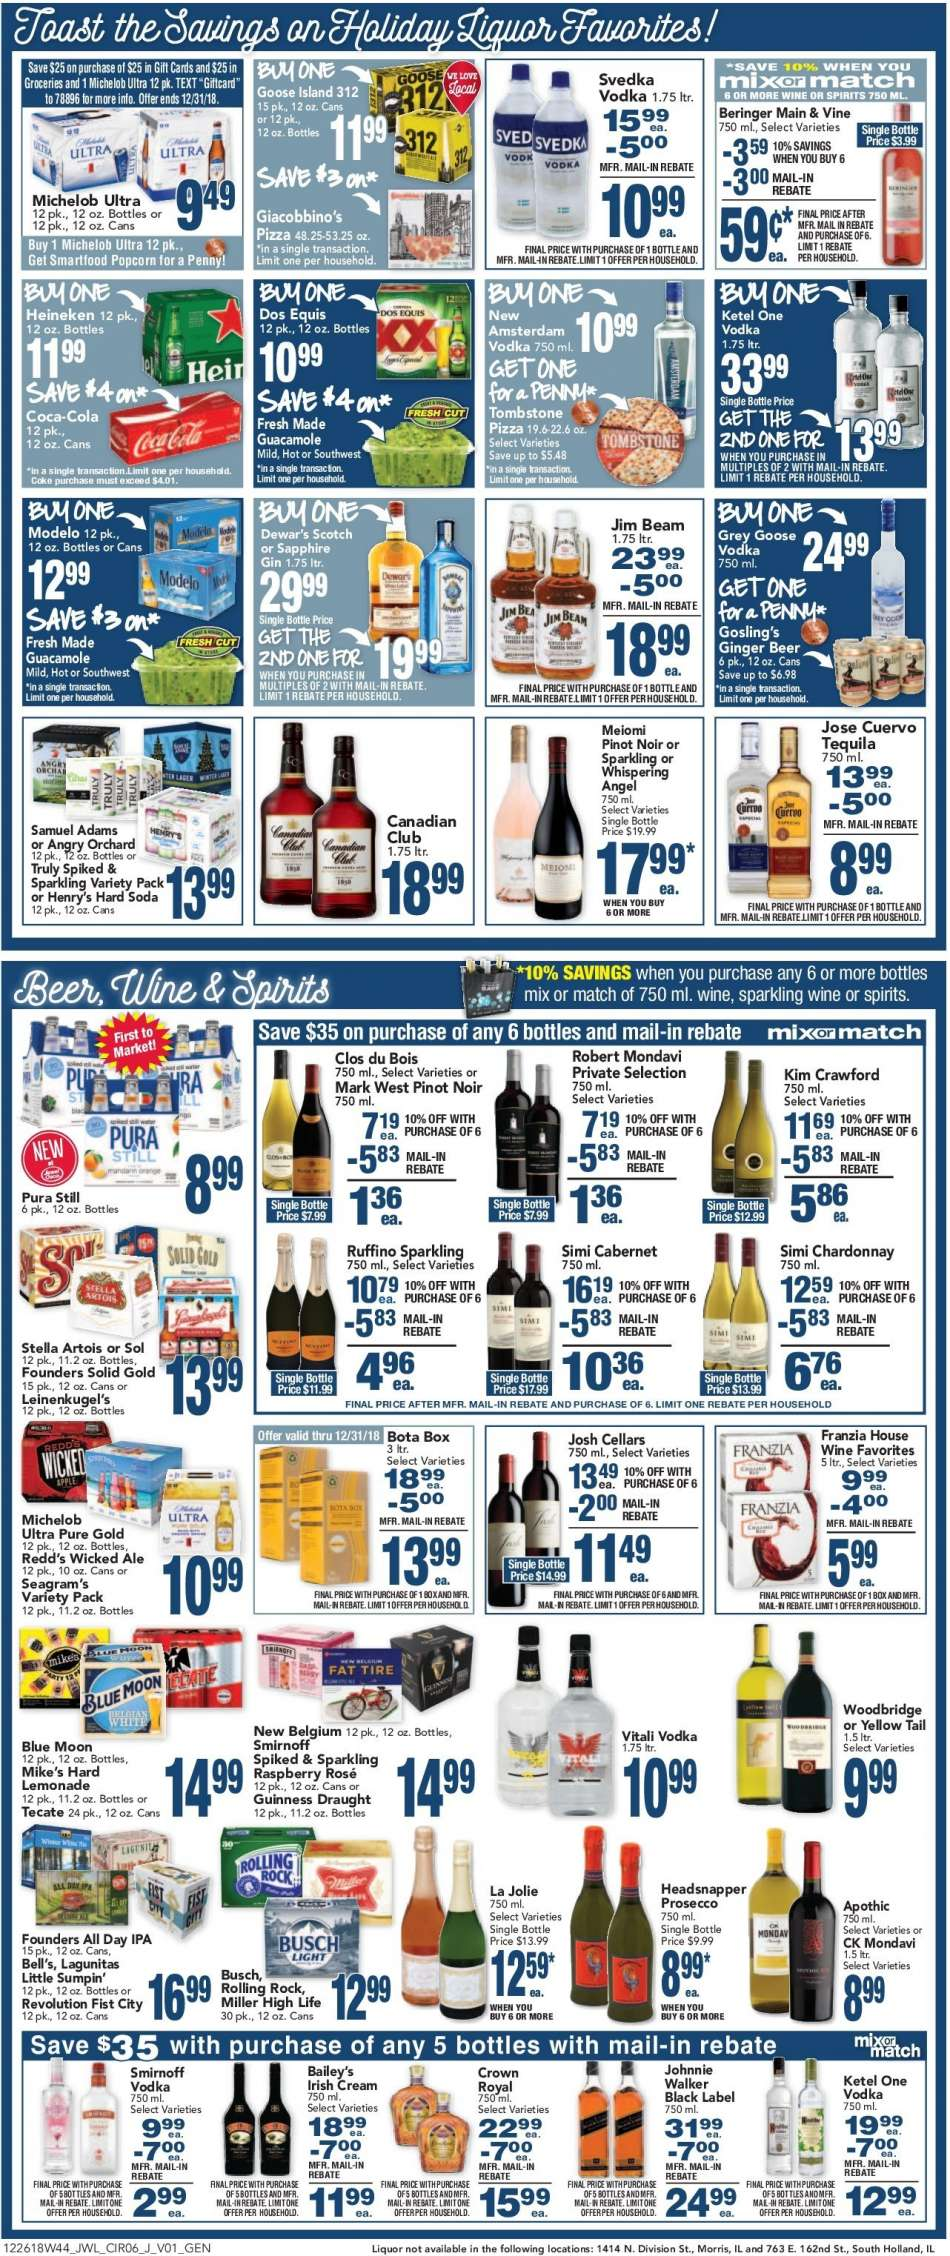 Jewel Osco flyer 12 26 2018 - 01 01 2019 | Weekly-ads us